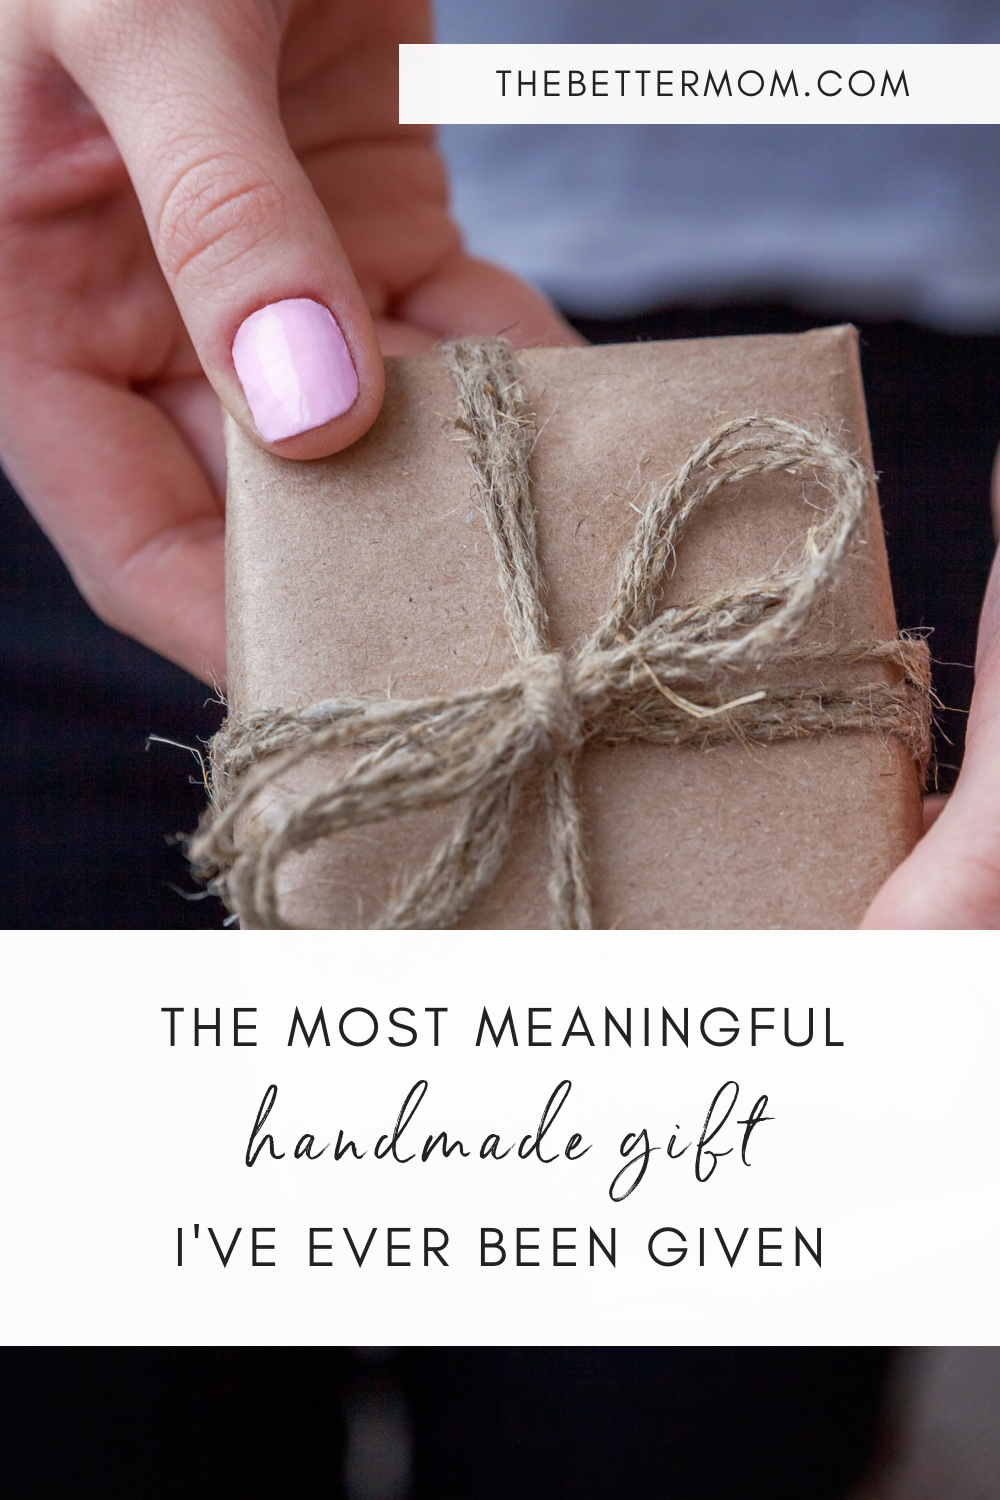 Have you ever been given a gift that spoke directly to your heart? We have a homemade gift idea for you that does not require craftiness, but is sure to bless someone you love very much!